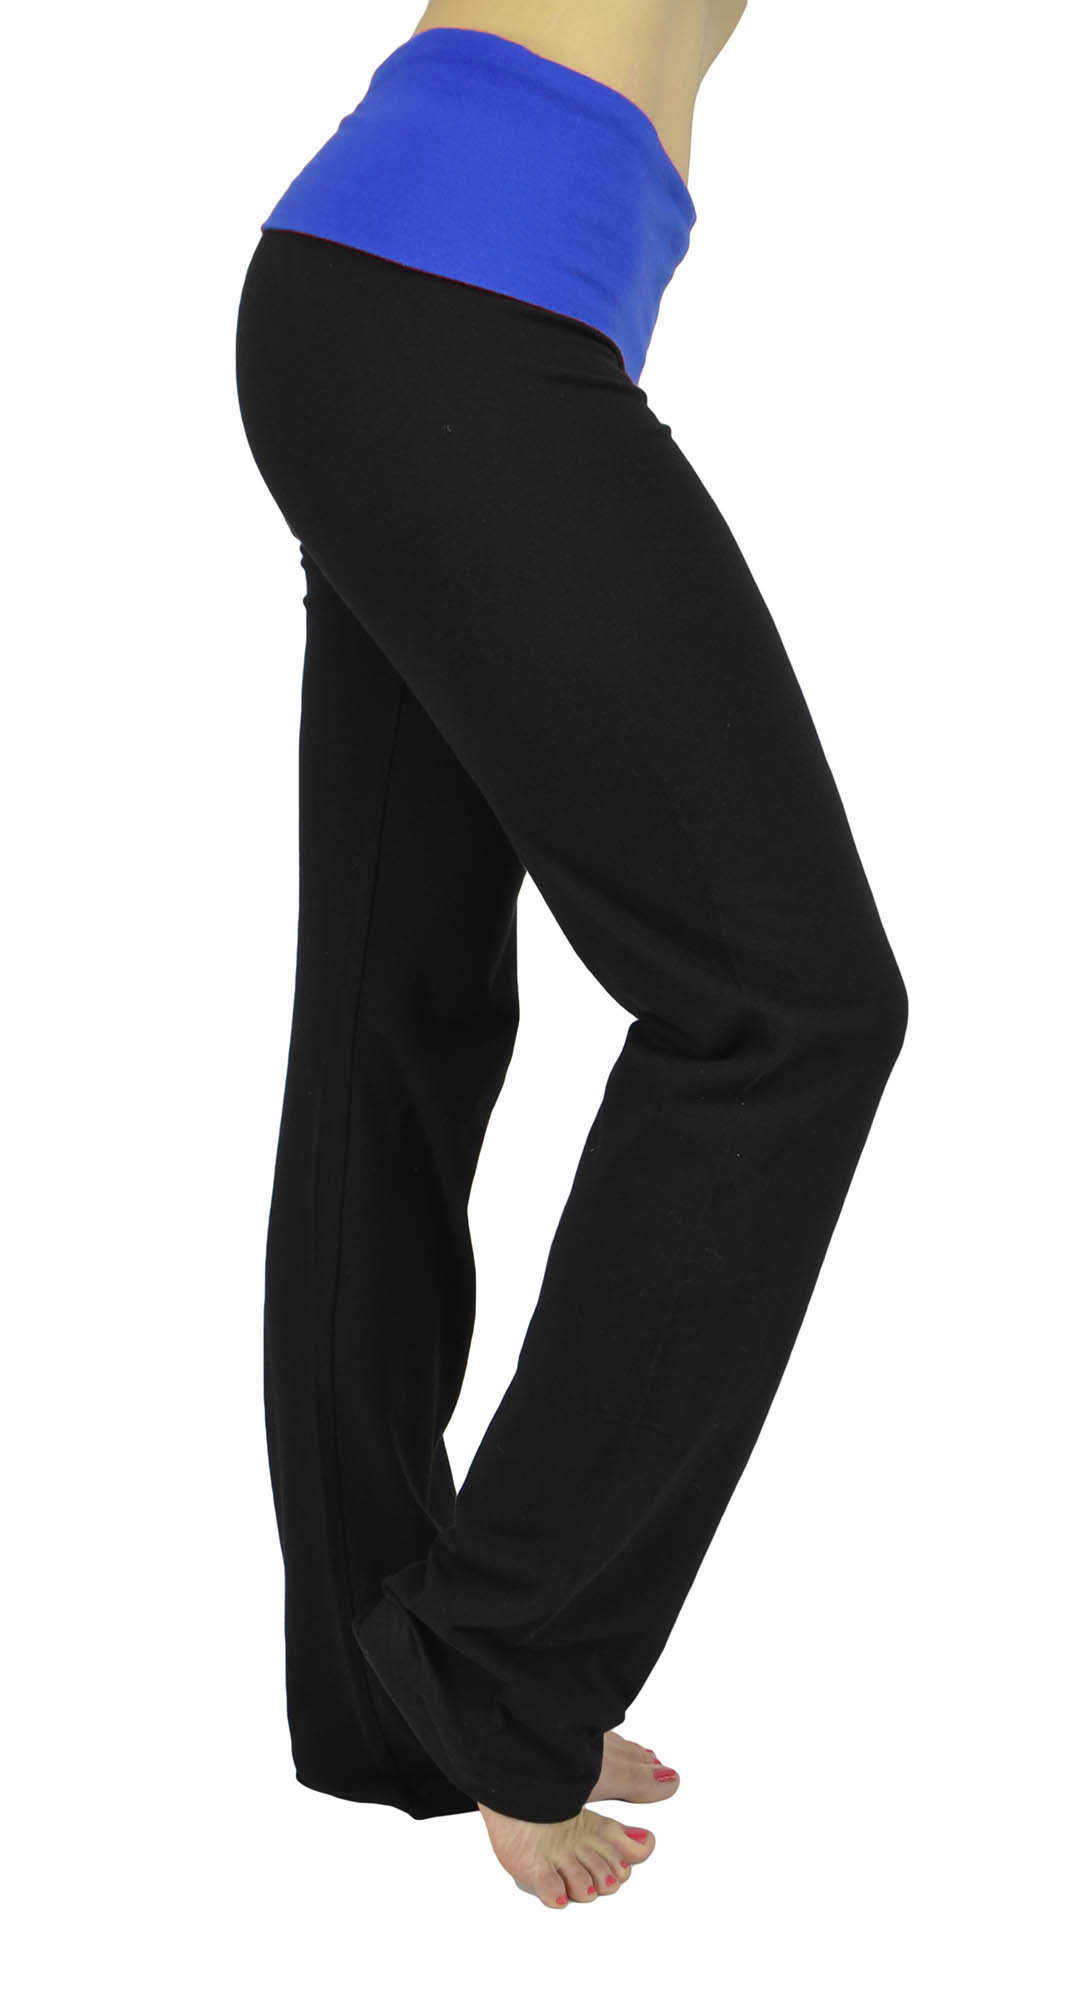 Belle Donne Womens Workout Fexible Fold Over Cotton Yoga Pant-Bright Royal/Small